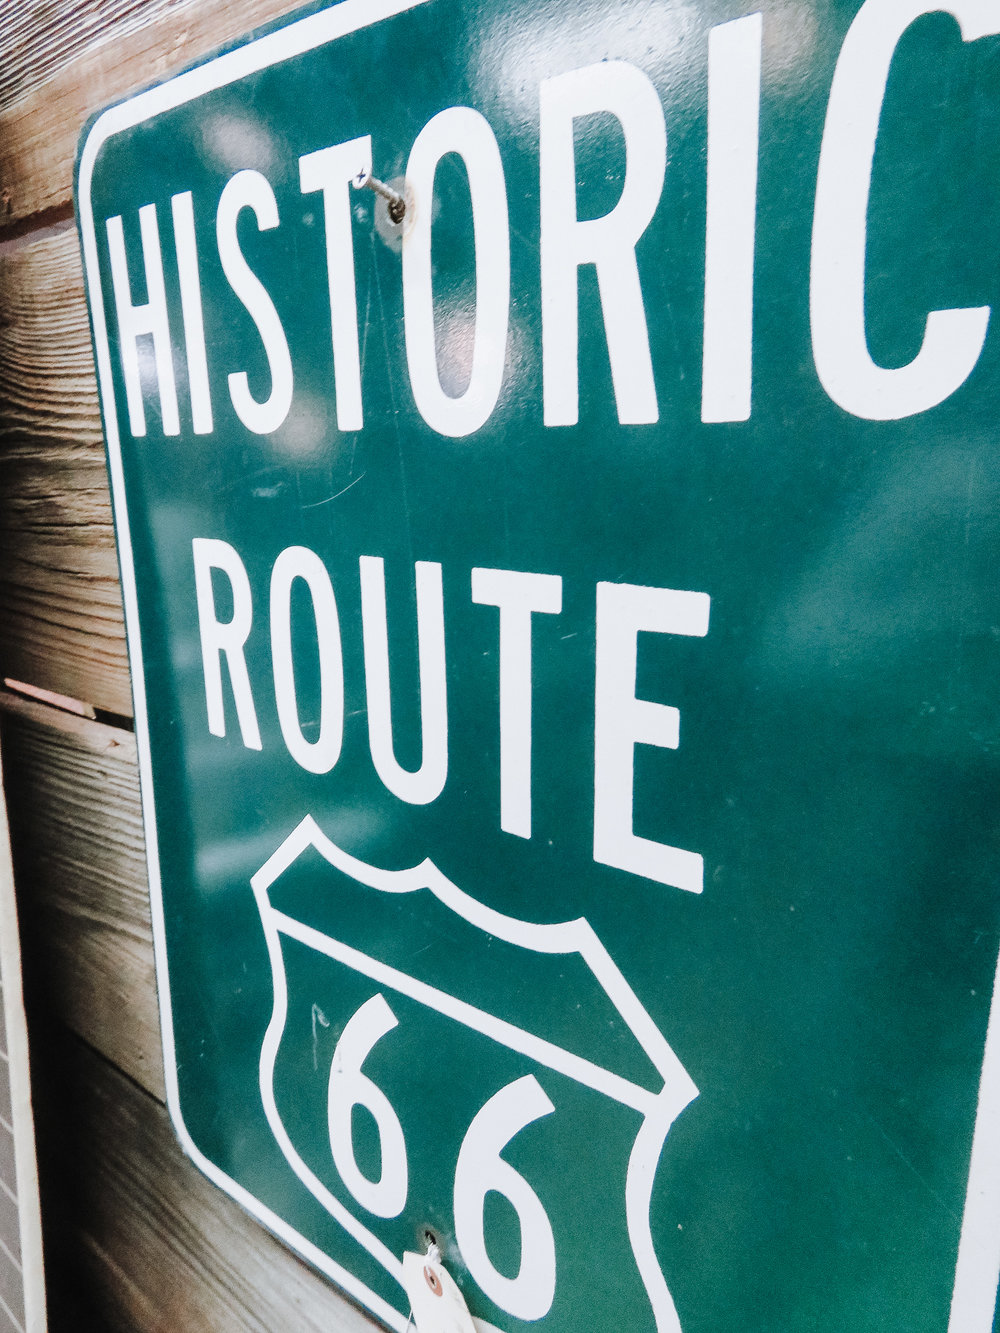 Signage - Route 66 signs are the perfect way to bring a piece of your trip. Signs from local businesses can also make a great new addition!